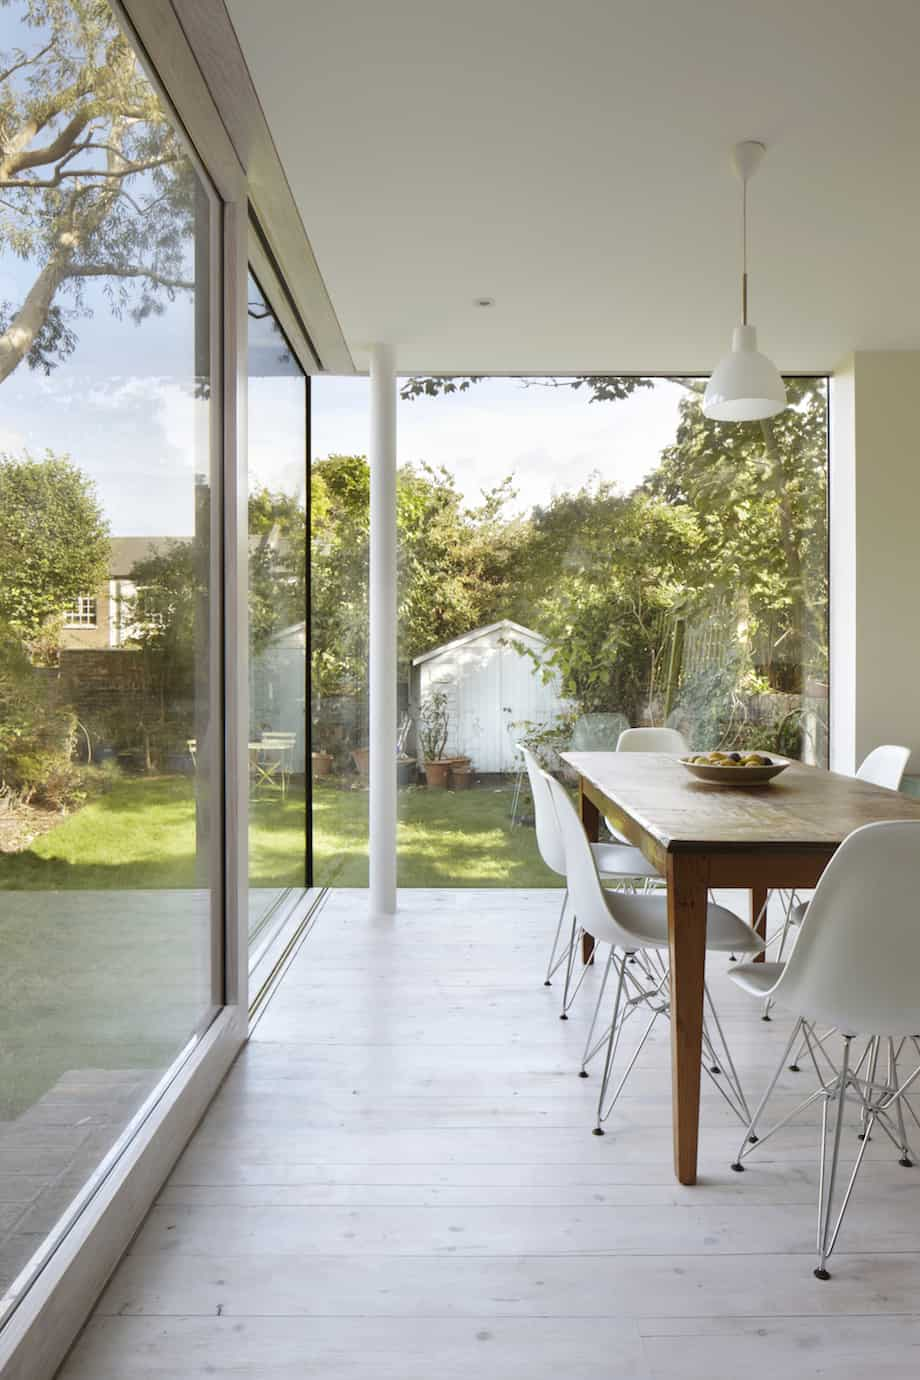 London House Extension Shaping a Contemporary Home by Cousins & Cousins Architects homesthetics (7)